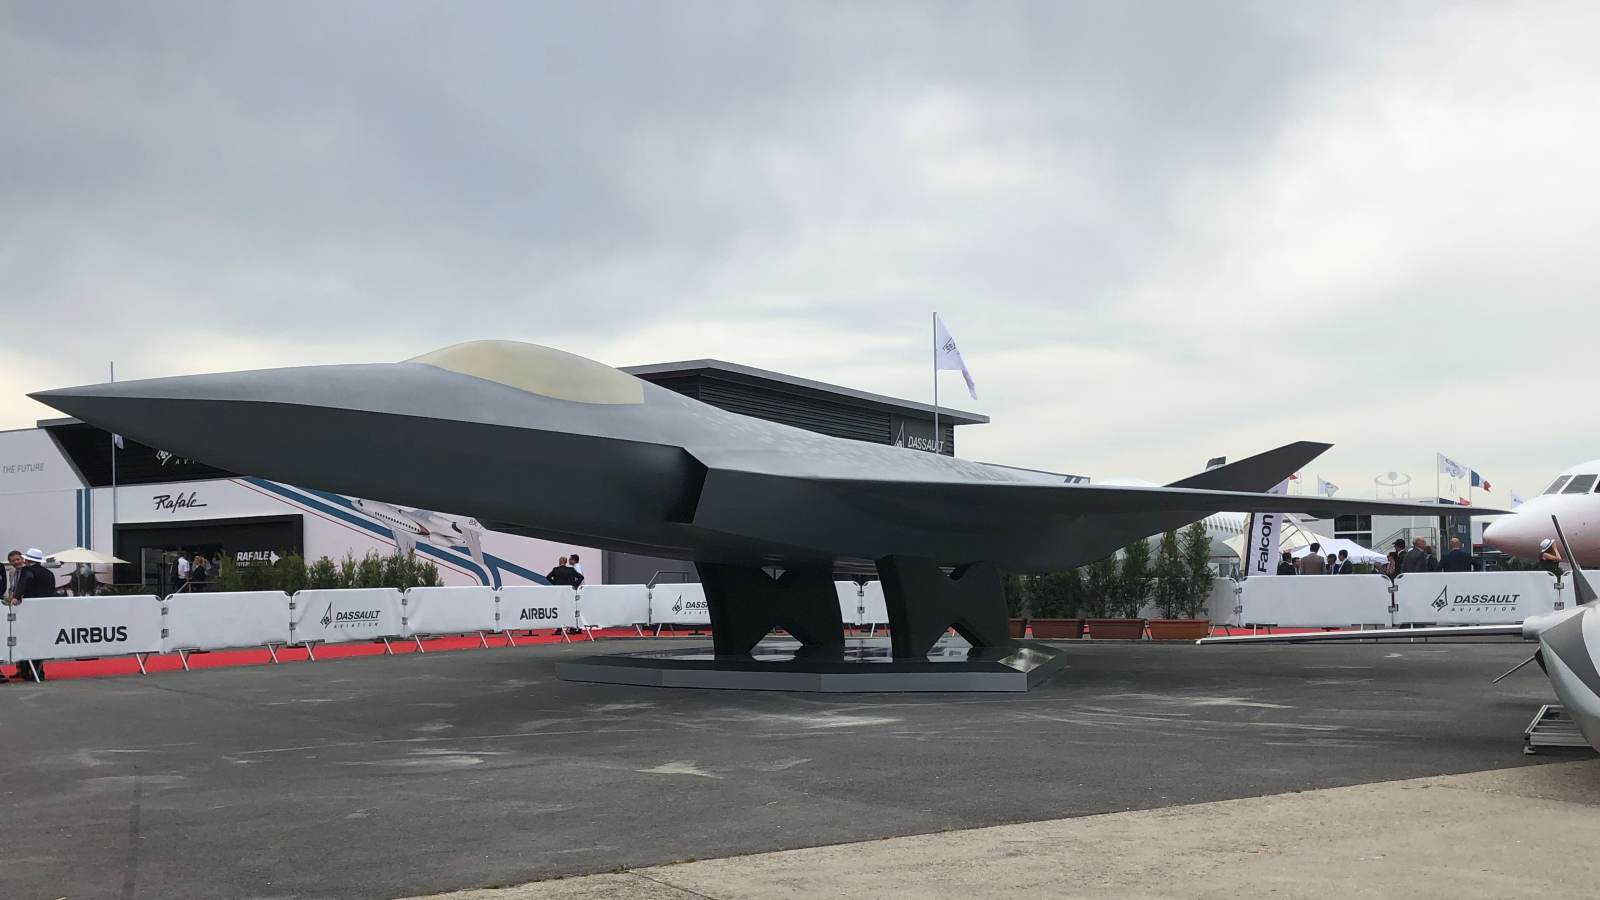 Photo: Model of the Air Combat System of the European Future, unveiled at the 2019 Paris Air Show. Credit: Wikimedia Commons